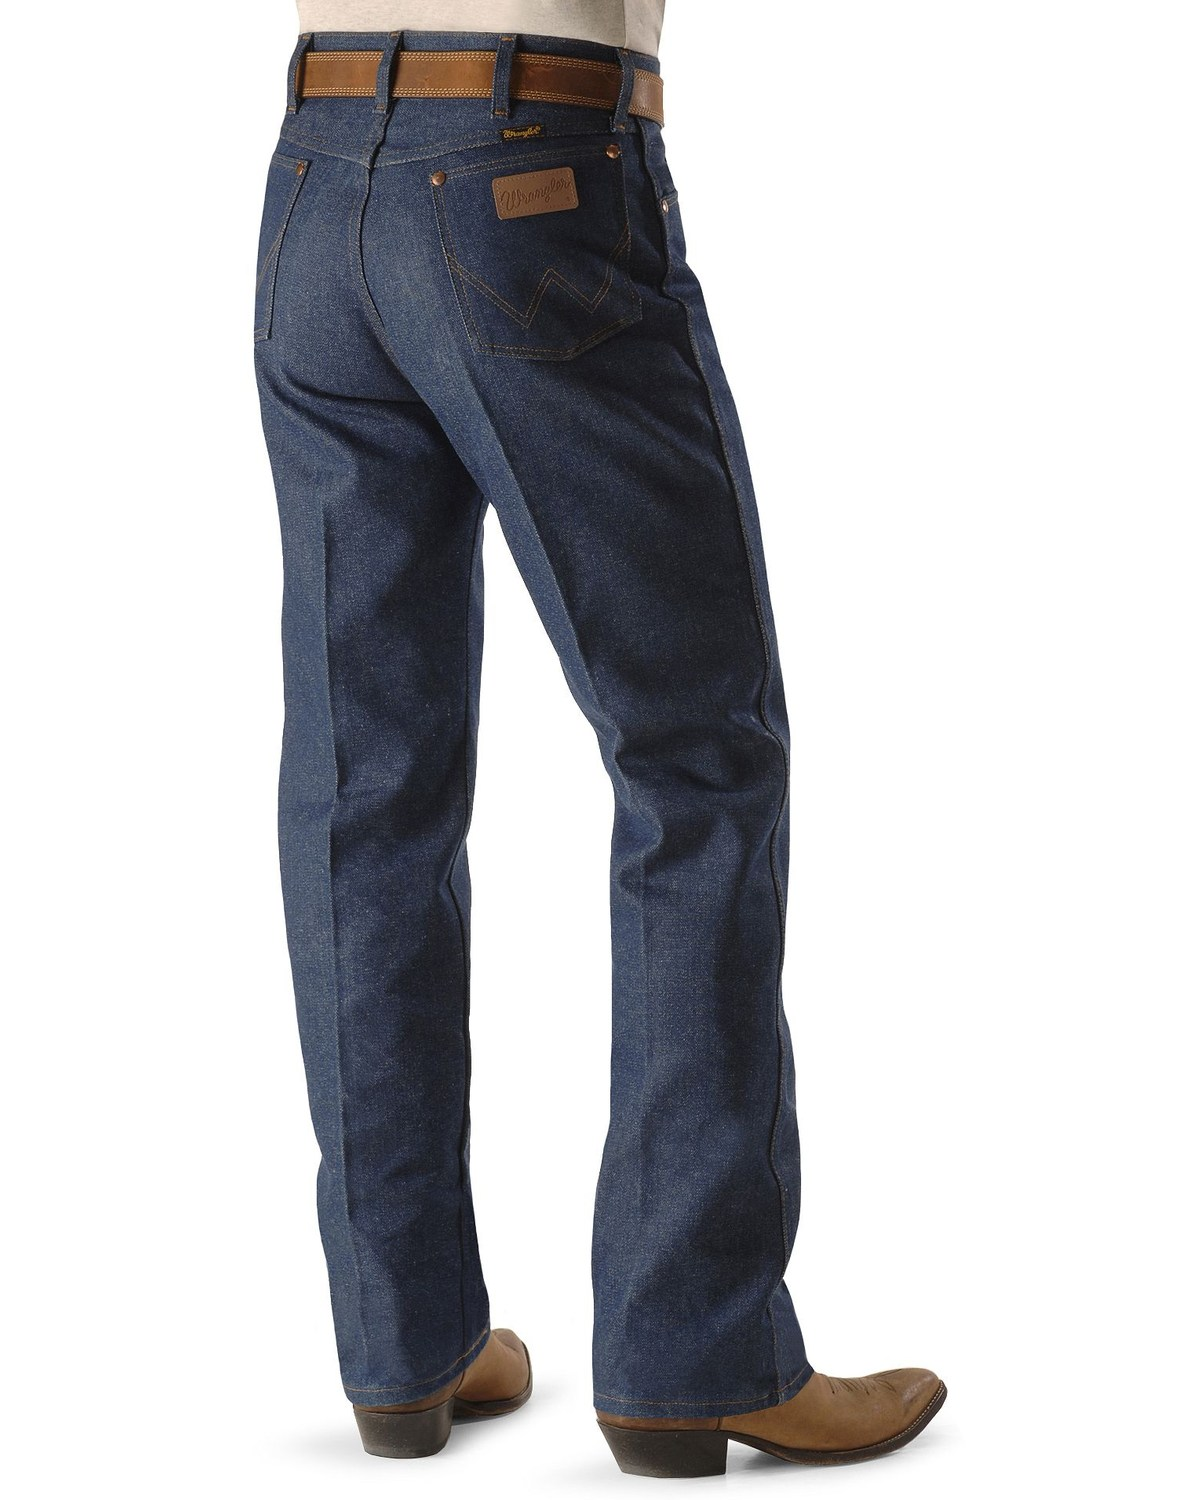 95205545 Zoomed Image Wrangler Men's Original Fit Rigid Jeans, Indigo, ...